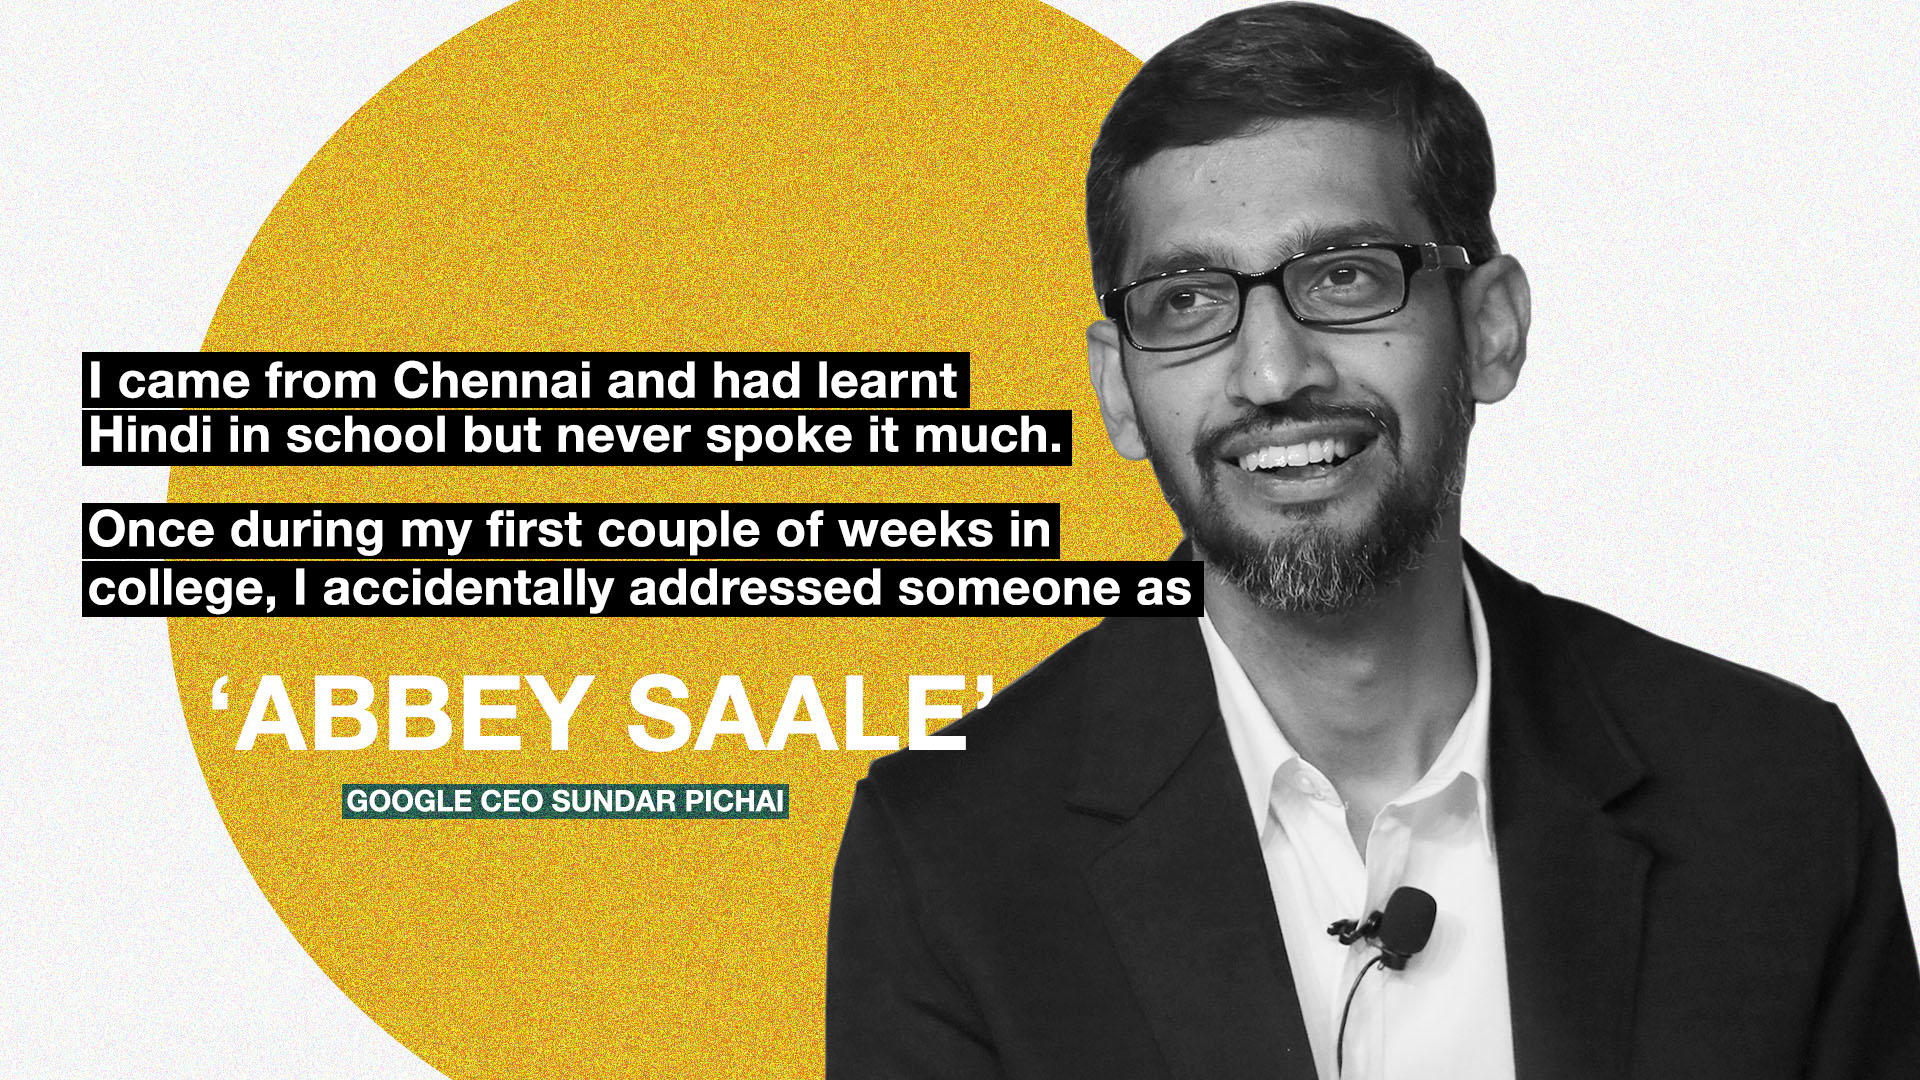 You Are My Life Quotes Wallpaper 15 Things Google Ceo Sundar Pichai Revealed About Himself